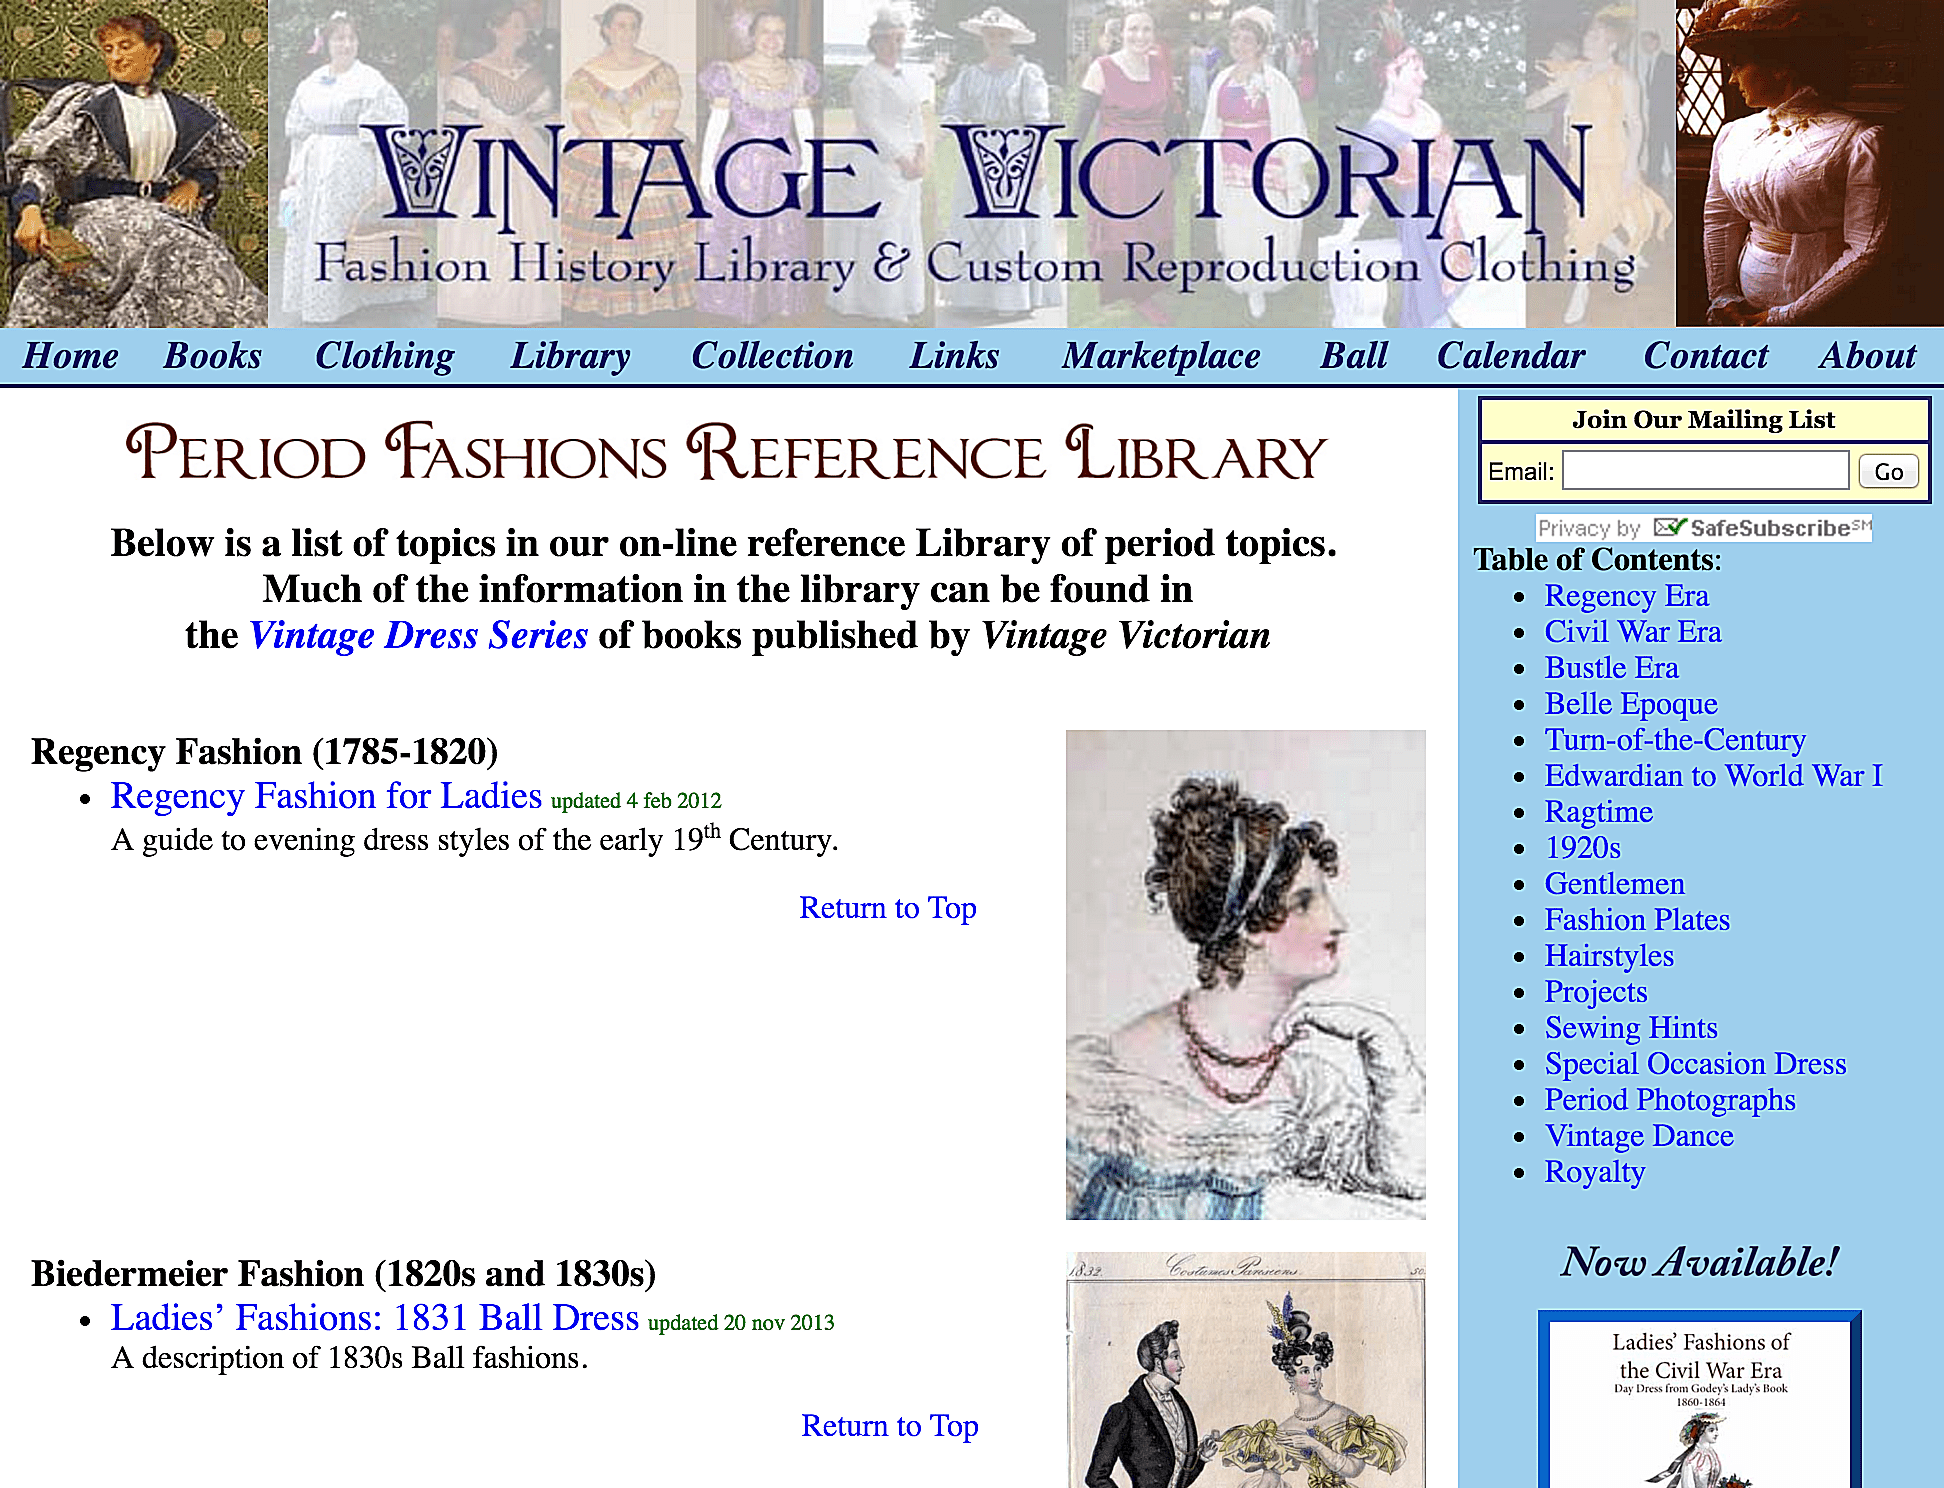 The Fashion History Library from Vintage Victorian covers all types of dress, from underclothes to hats.